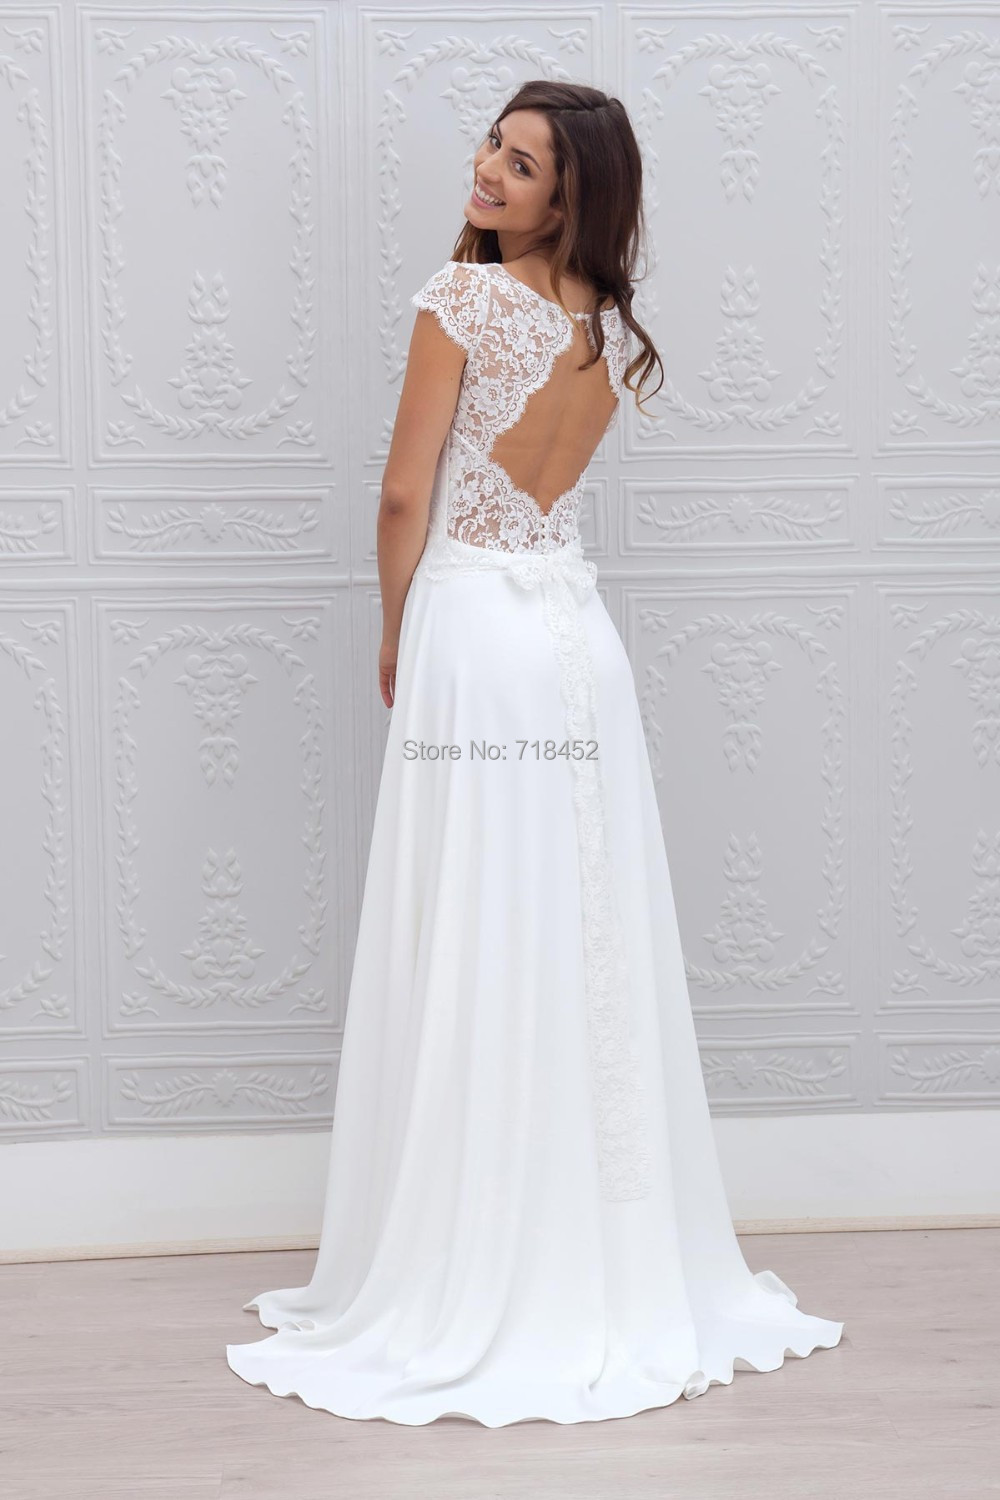 Chiffon Wedding Gowns with Sleeves